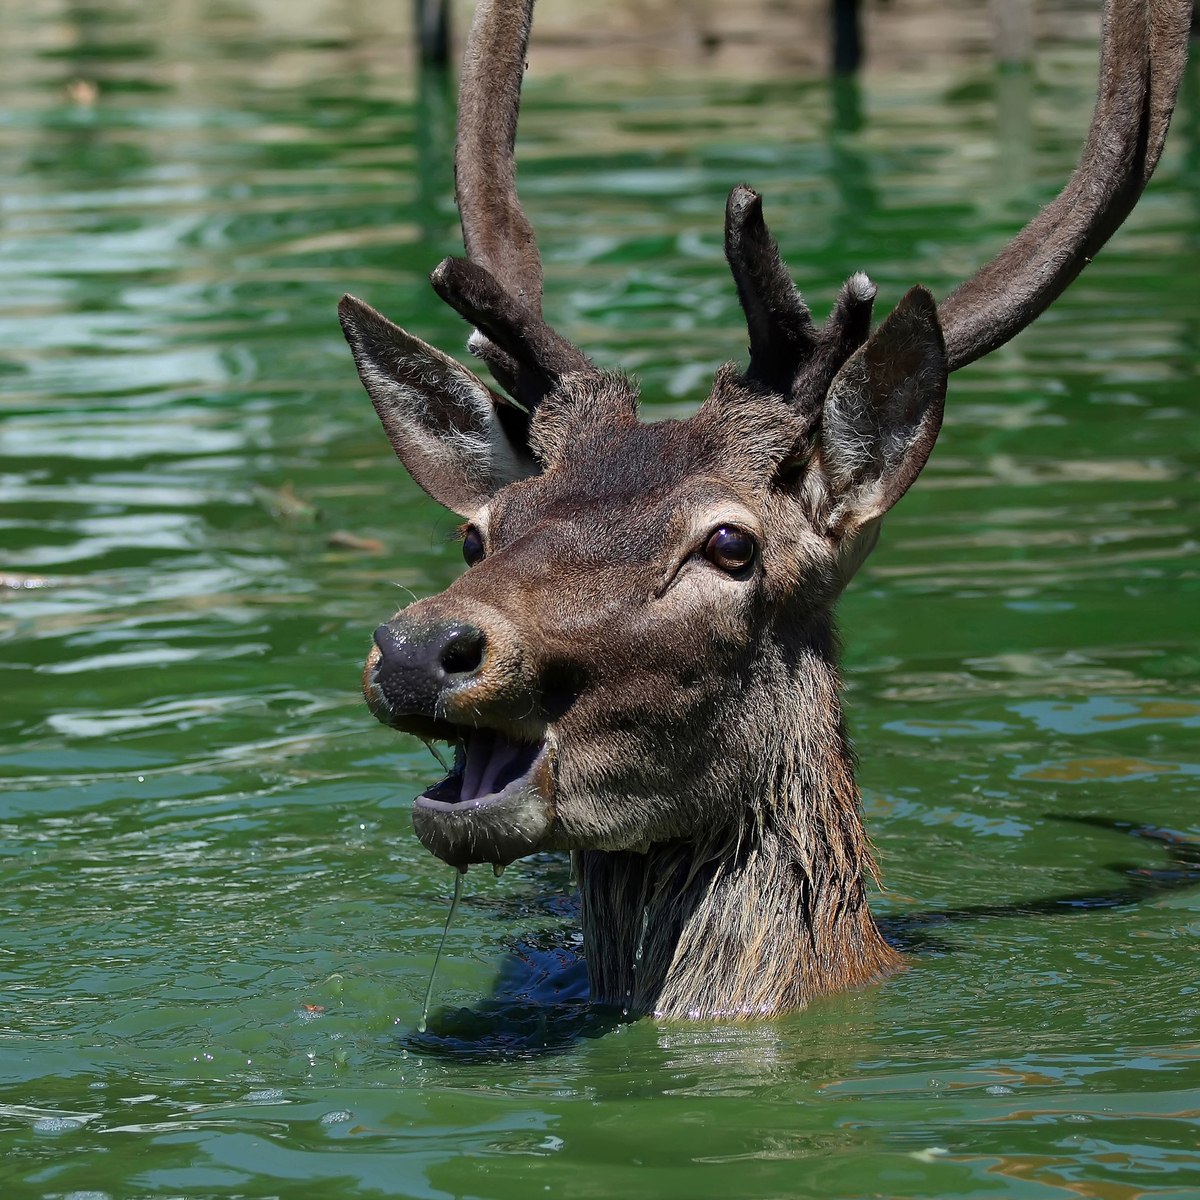 Daredevil Deer takes a 50-foot plunge off waterfall and walks away unphased. {Watch}